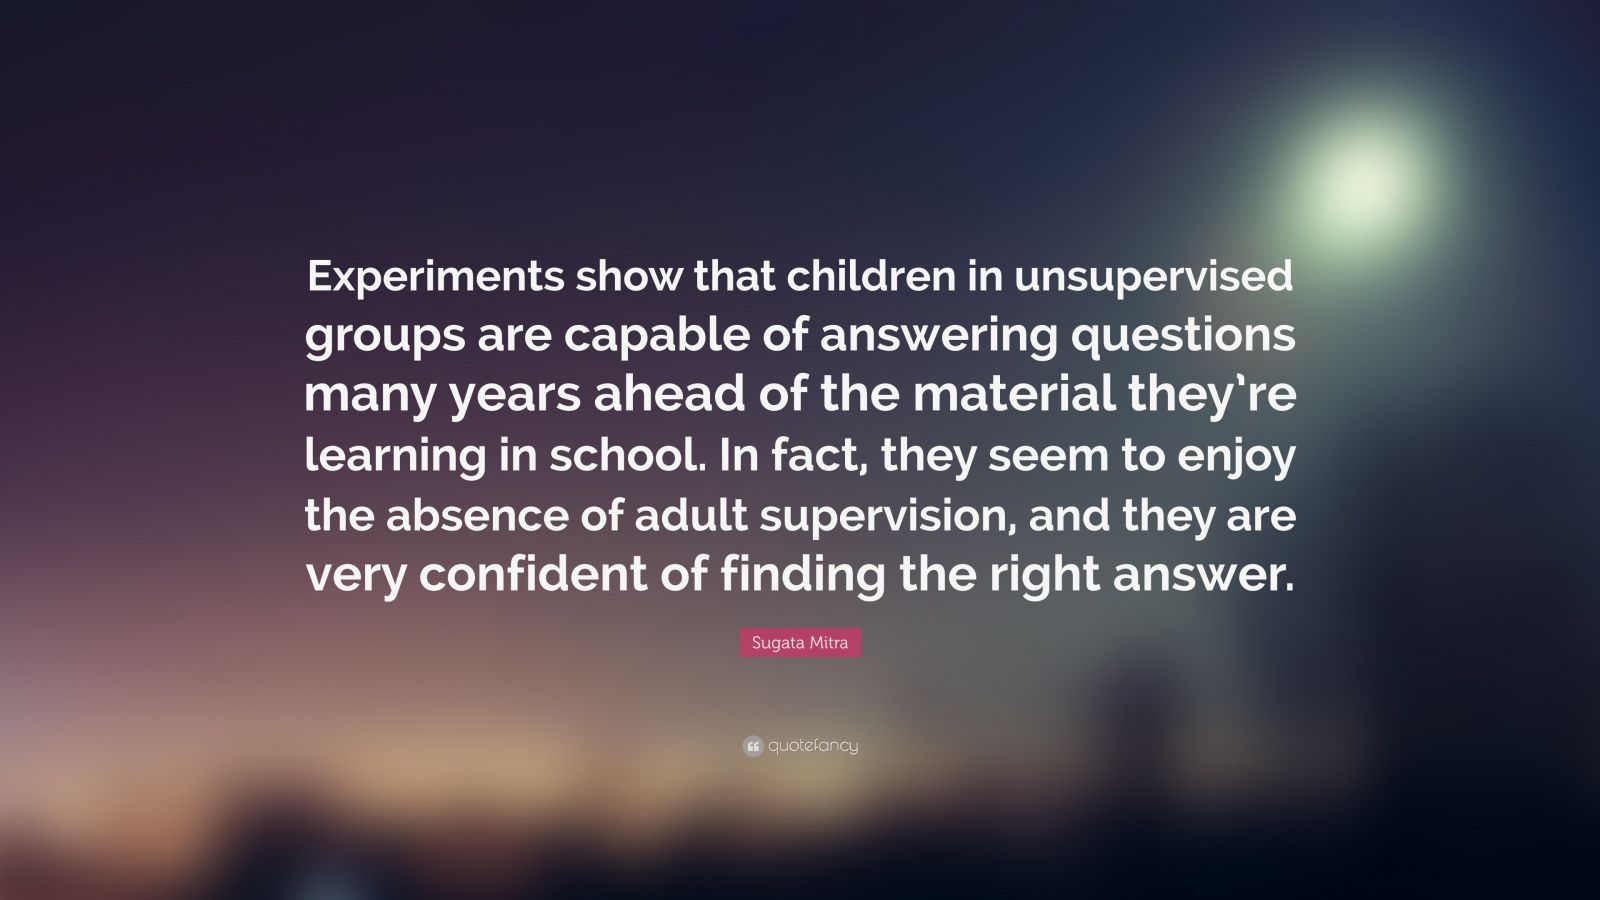 """Sugata Mitra Quote: """"Experiments show that children in unsupervised groups are capable of answering questions many years ahead of the material they're learning in school. In fact, they seem to enjoy the absence of adult supervision, and they are very confident of finding the right answer."""""""